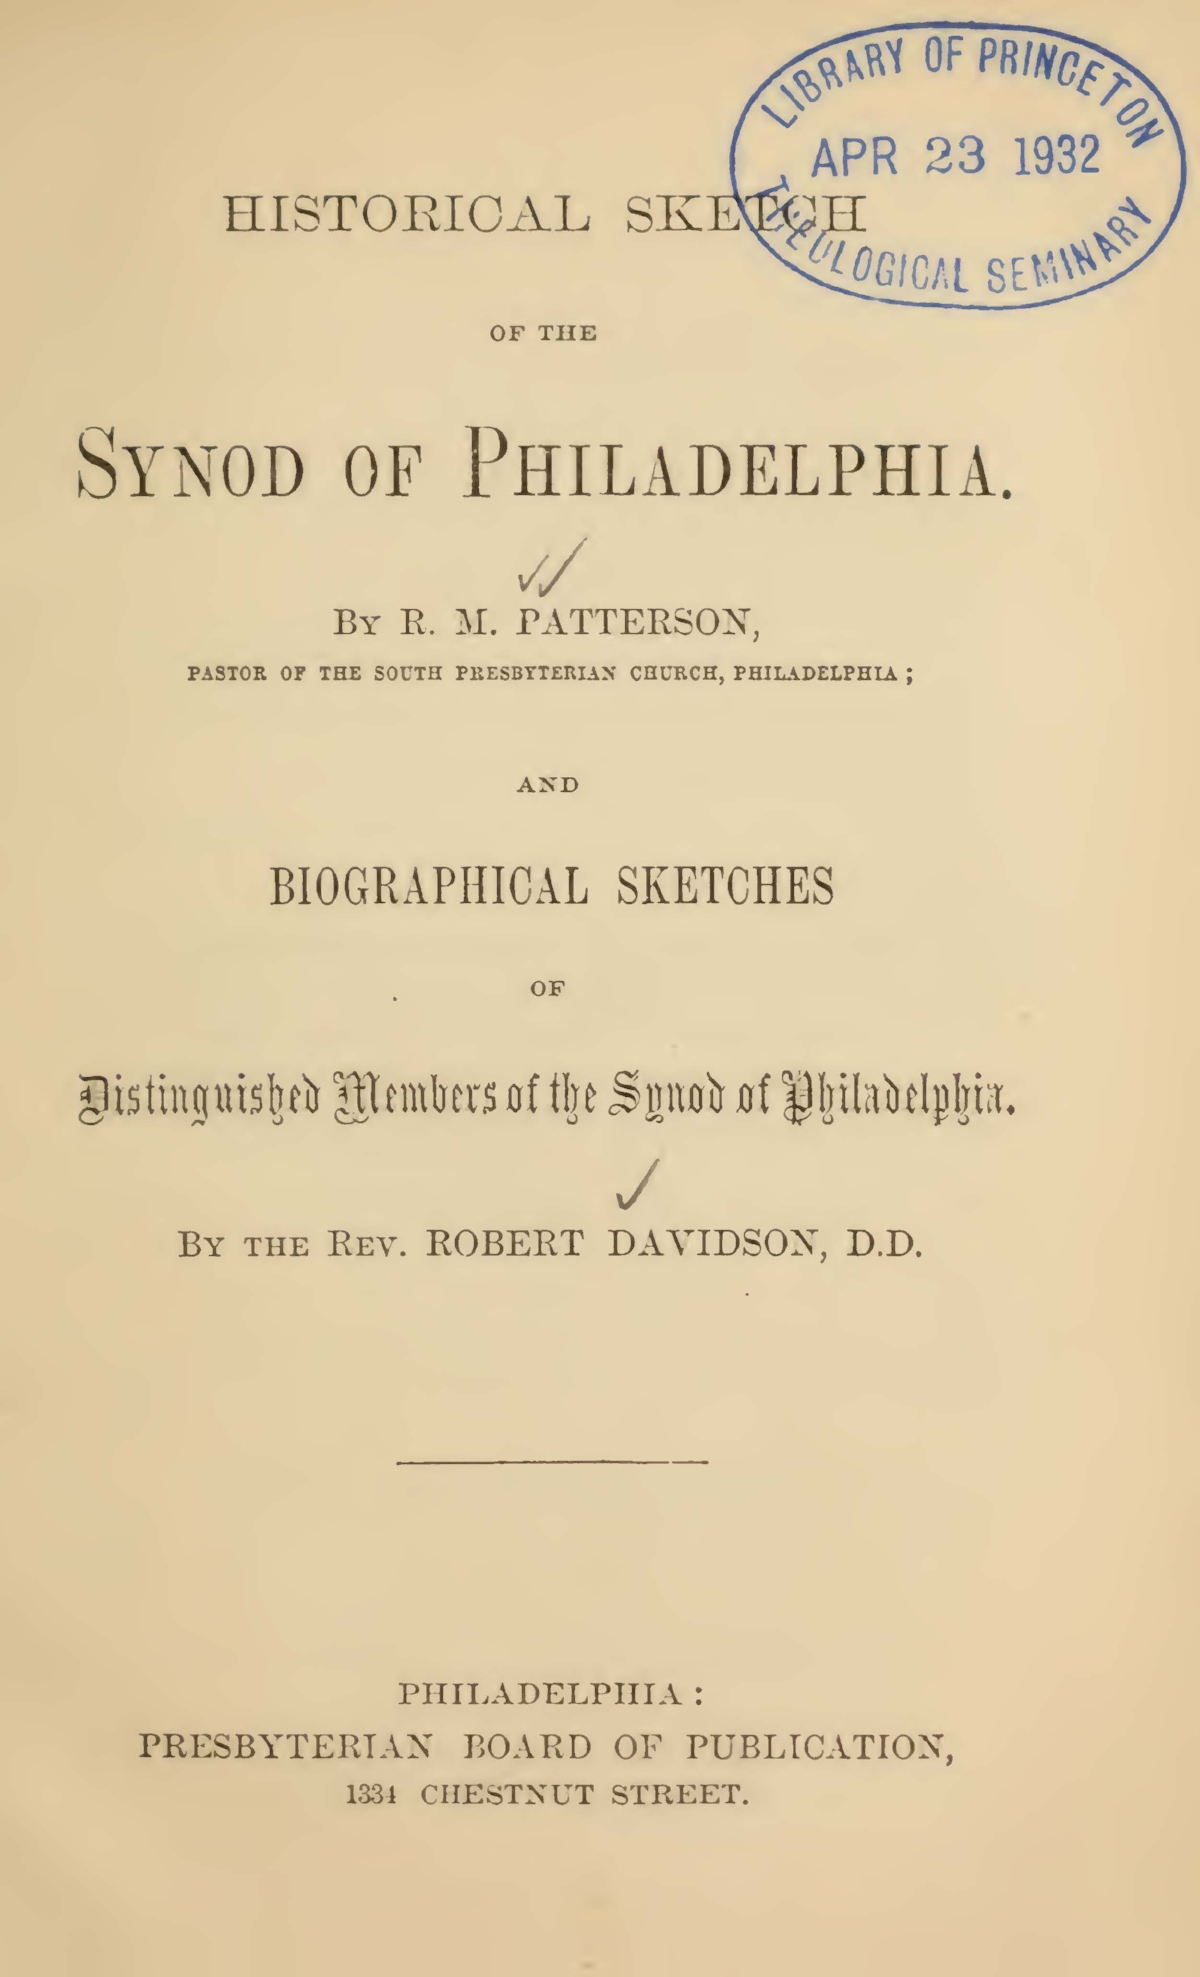 Davidson, Robert, Historical Sketch of the Synod of Philadelphia Title Page.jpg